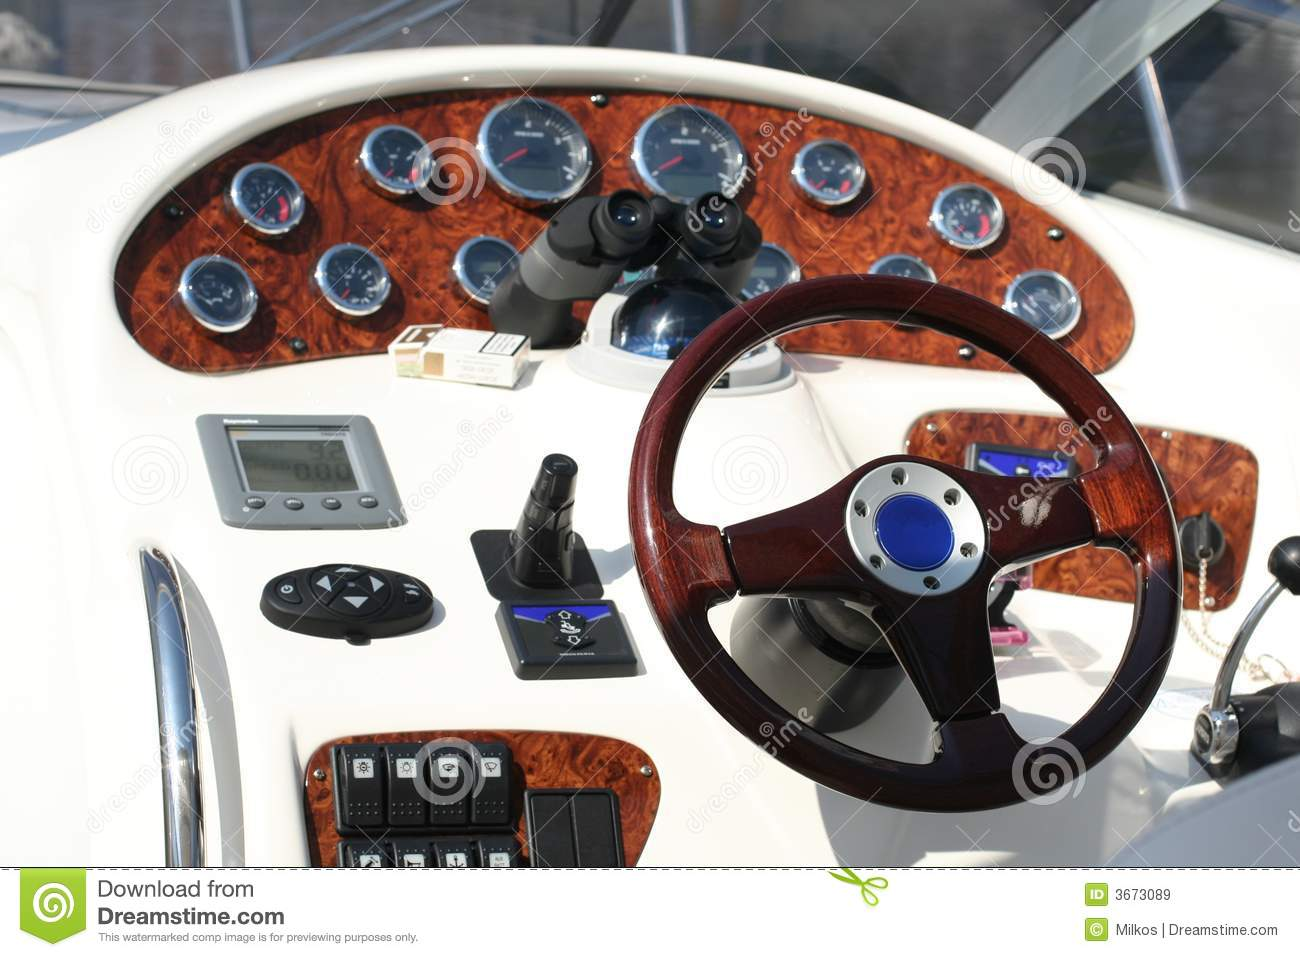 Boat Control Panels : Control panel of the speed boat stock image